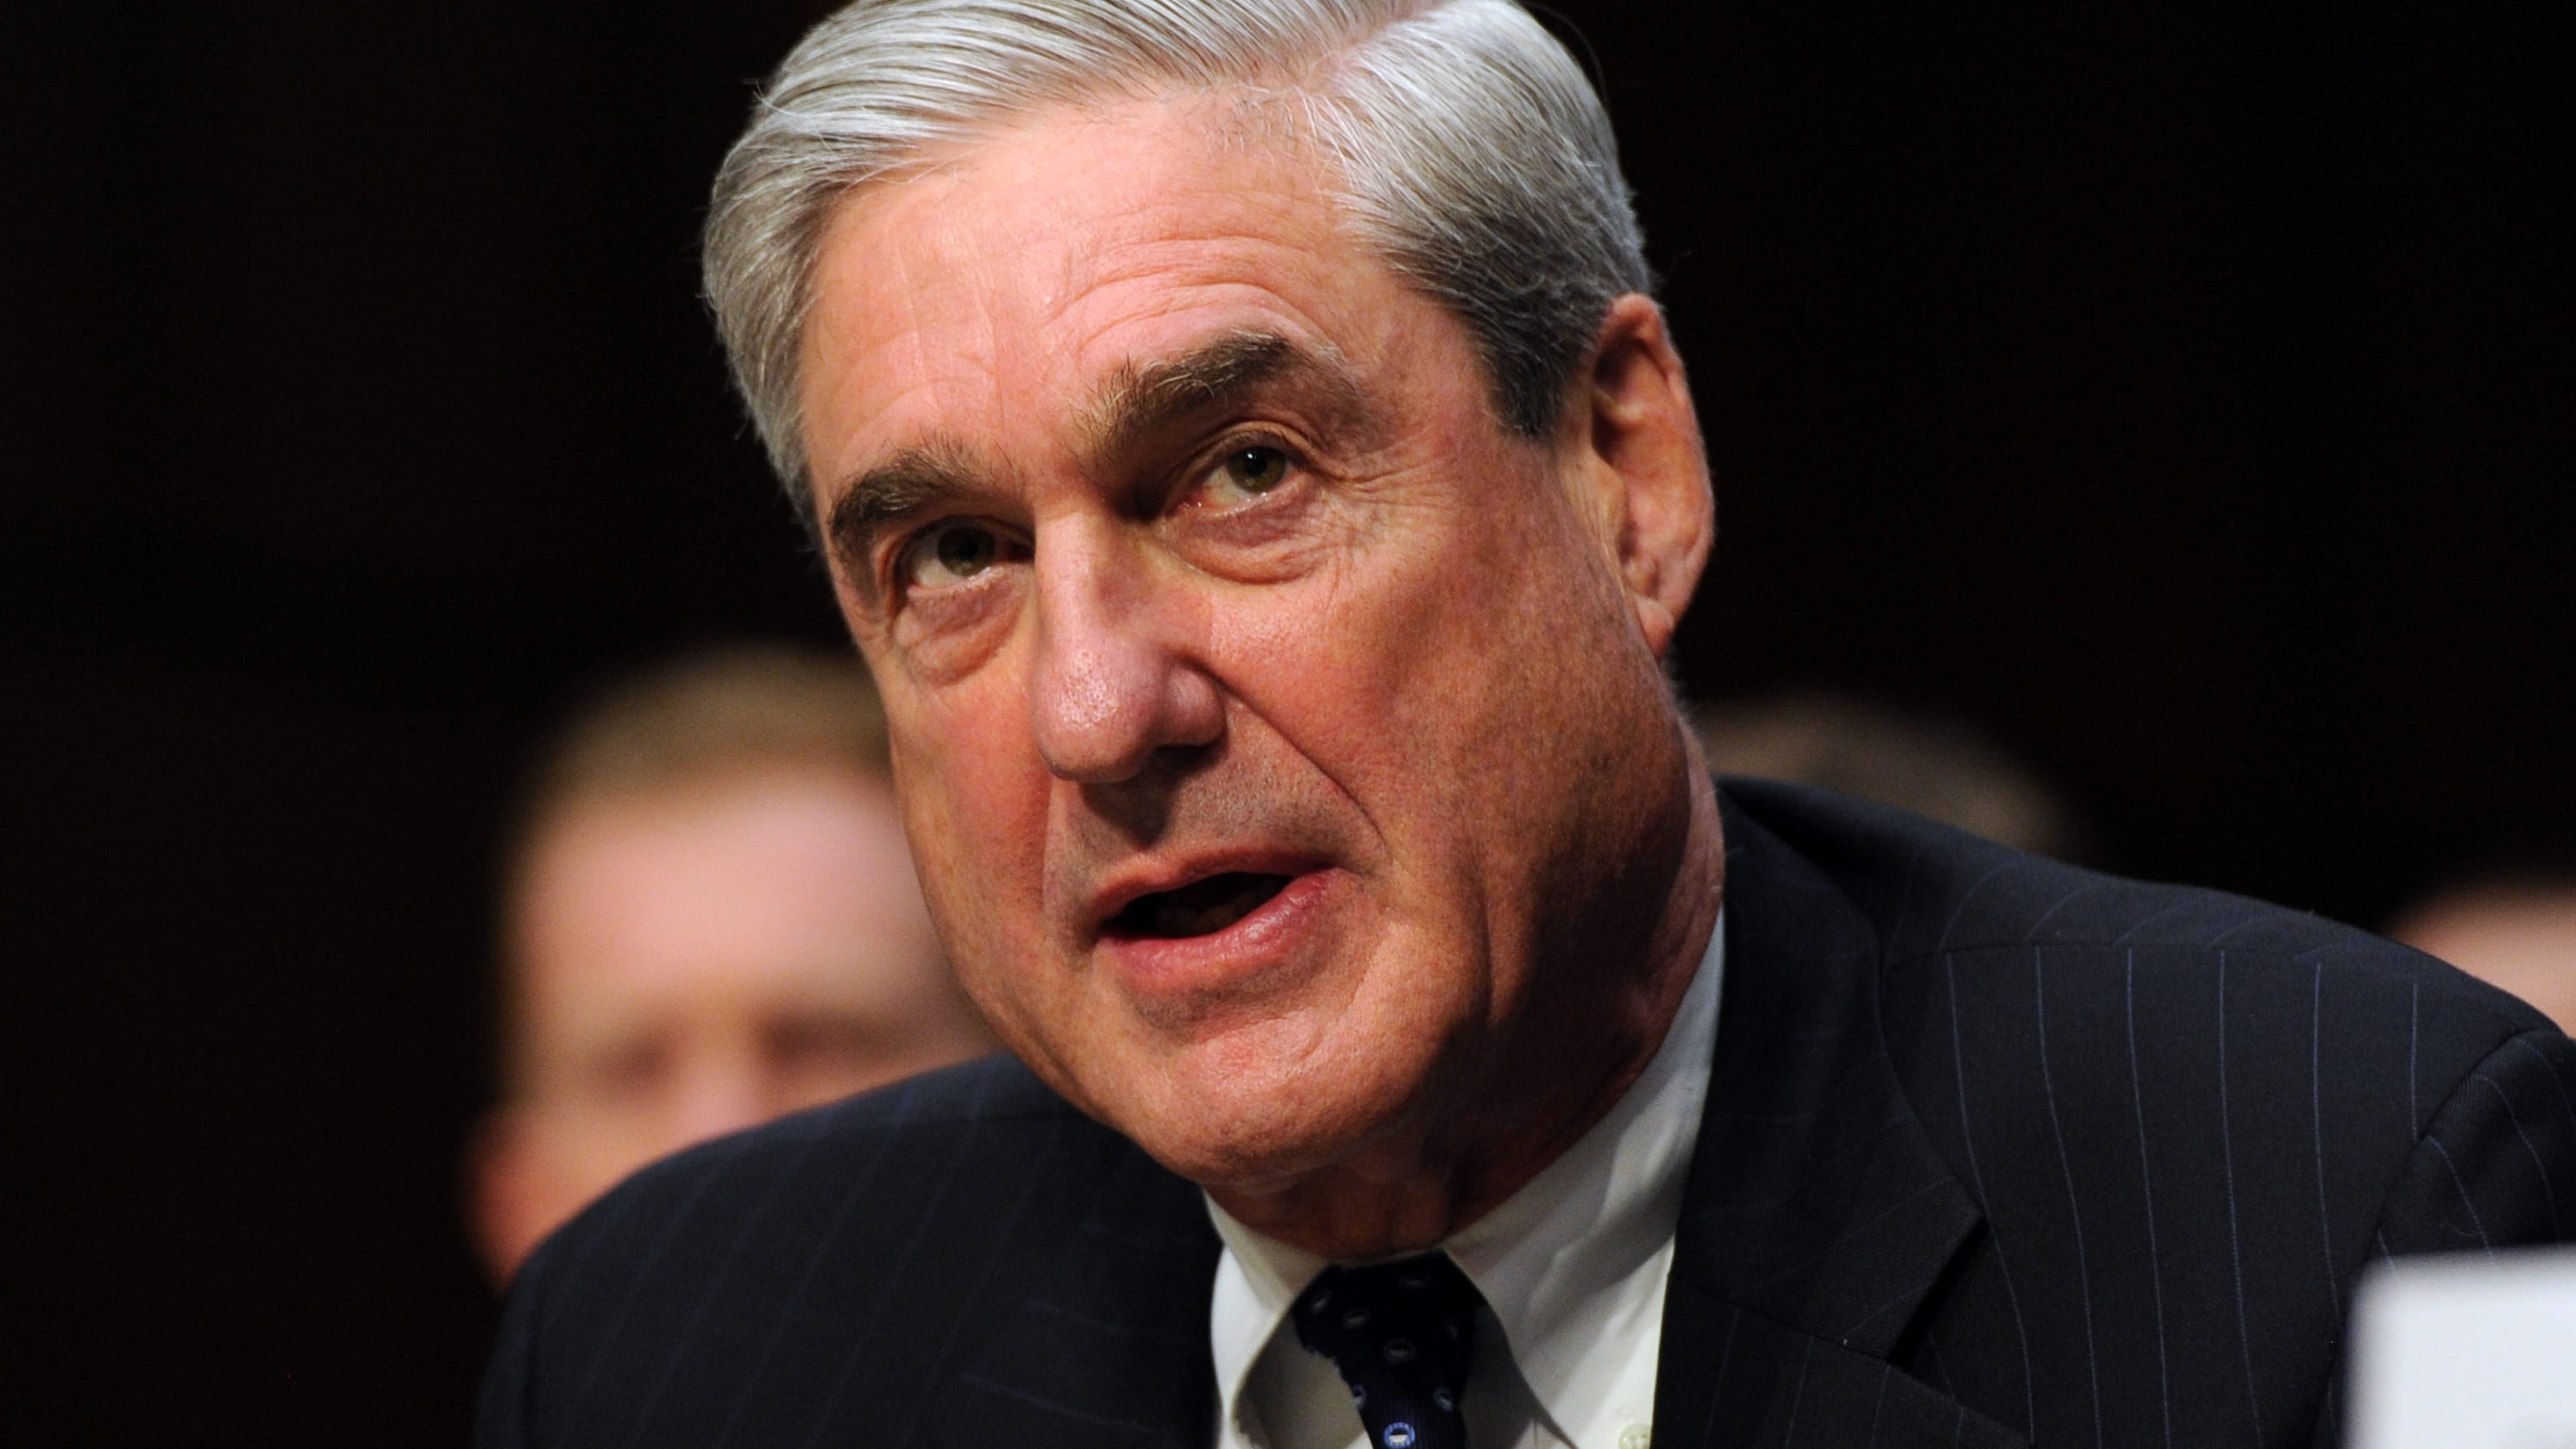 Nearly 500 witnesses, 675 days: The Mueller investigation by the numbers